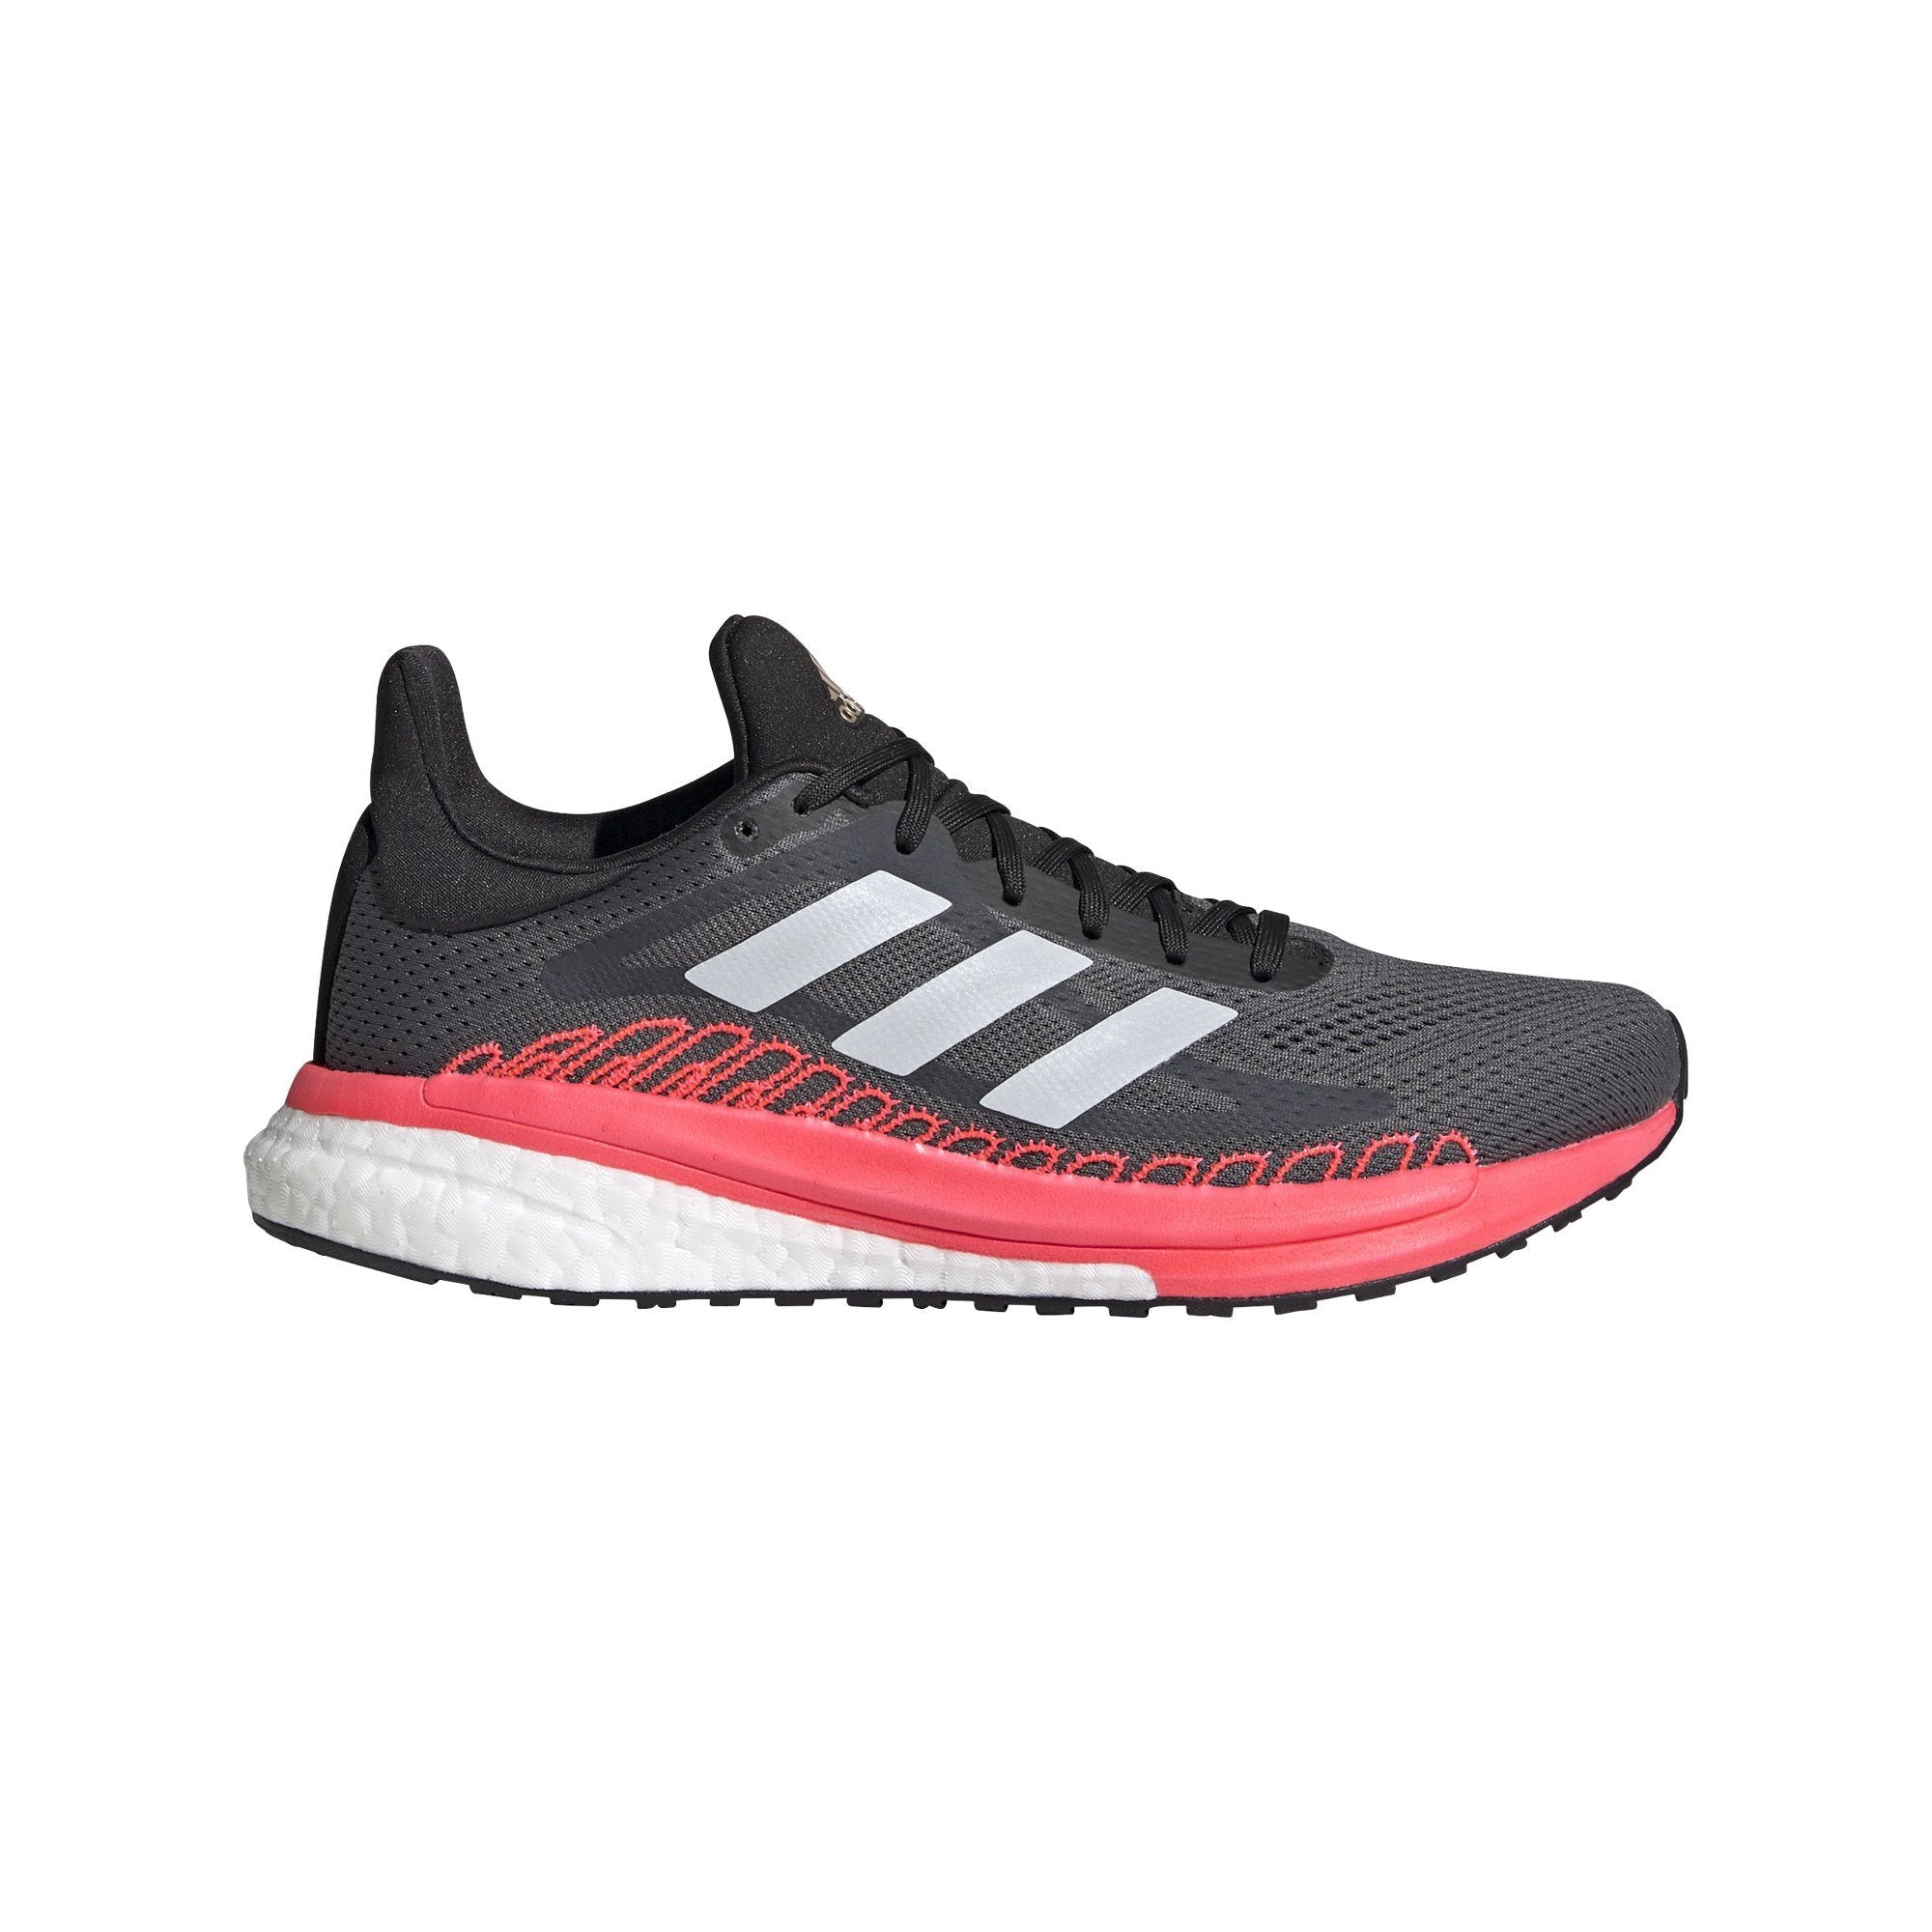 Adidas Women's Solar Glide ST 3 W - Grey Five/Cry White/ Signal Pink SP-Footwear-Womens Adidas